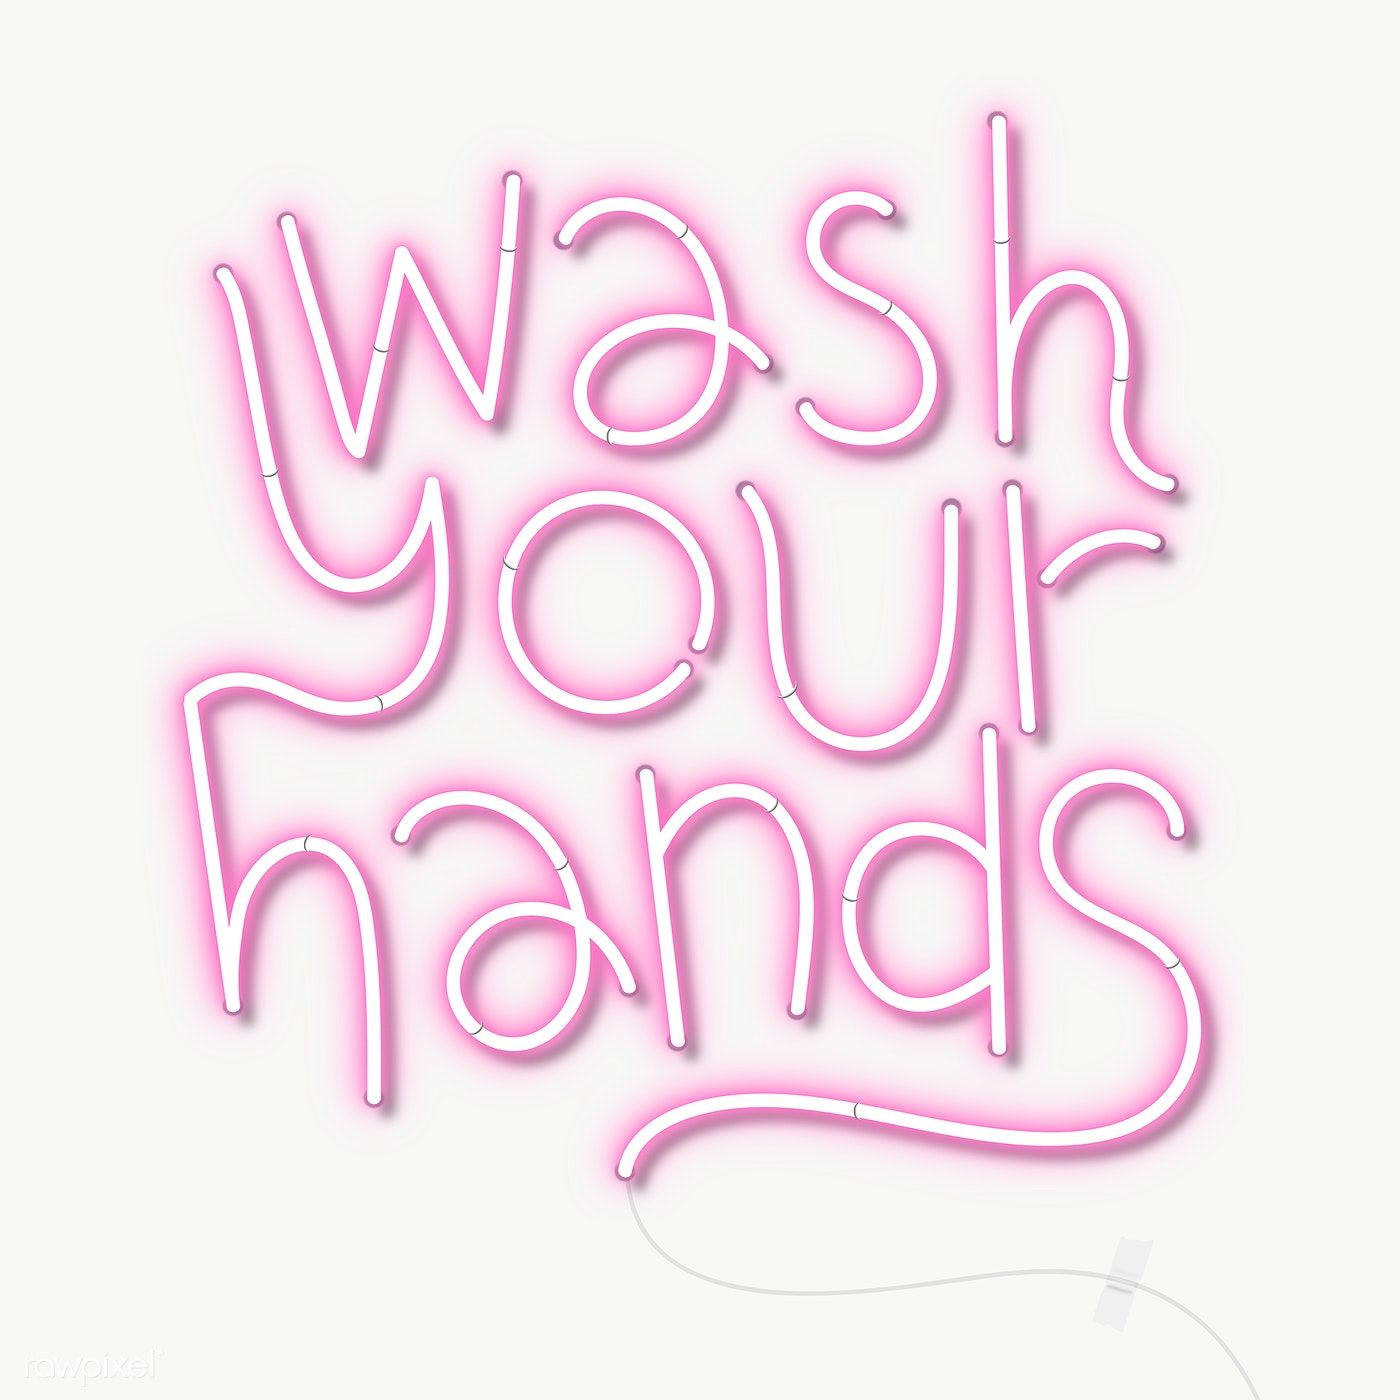 Pink Wash Your Hands Neon Sign Transparent Png Free Image By Rawpixel Com Techi In 2020 Neon Signs Neon Png Font Design Logo